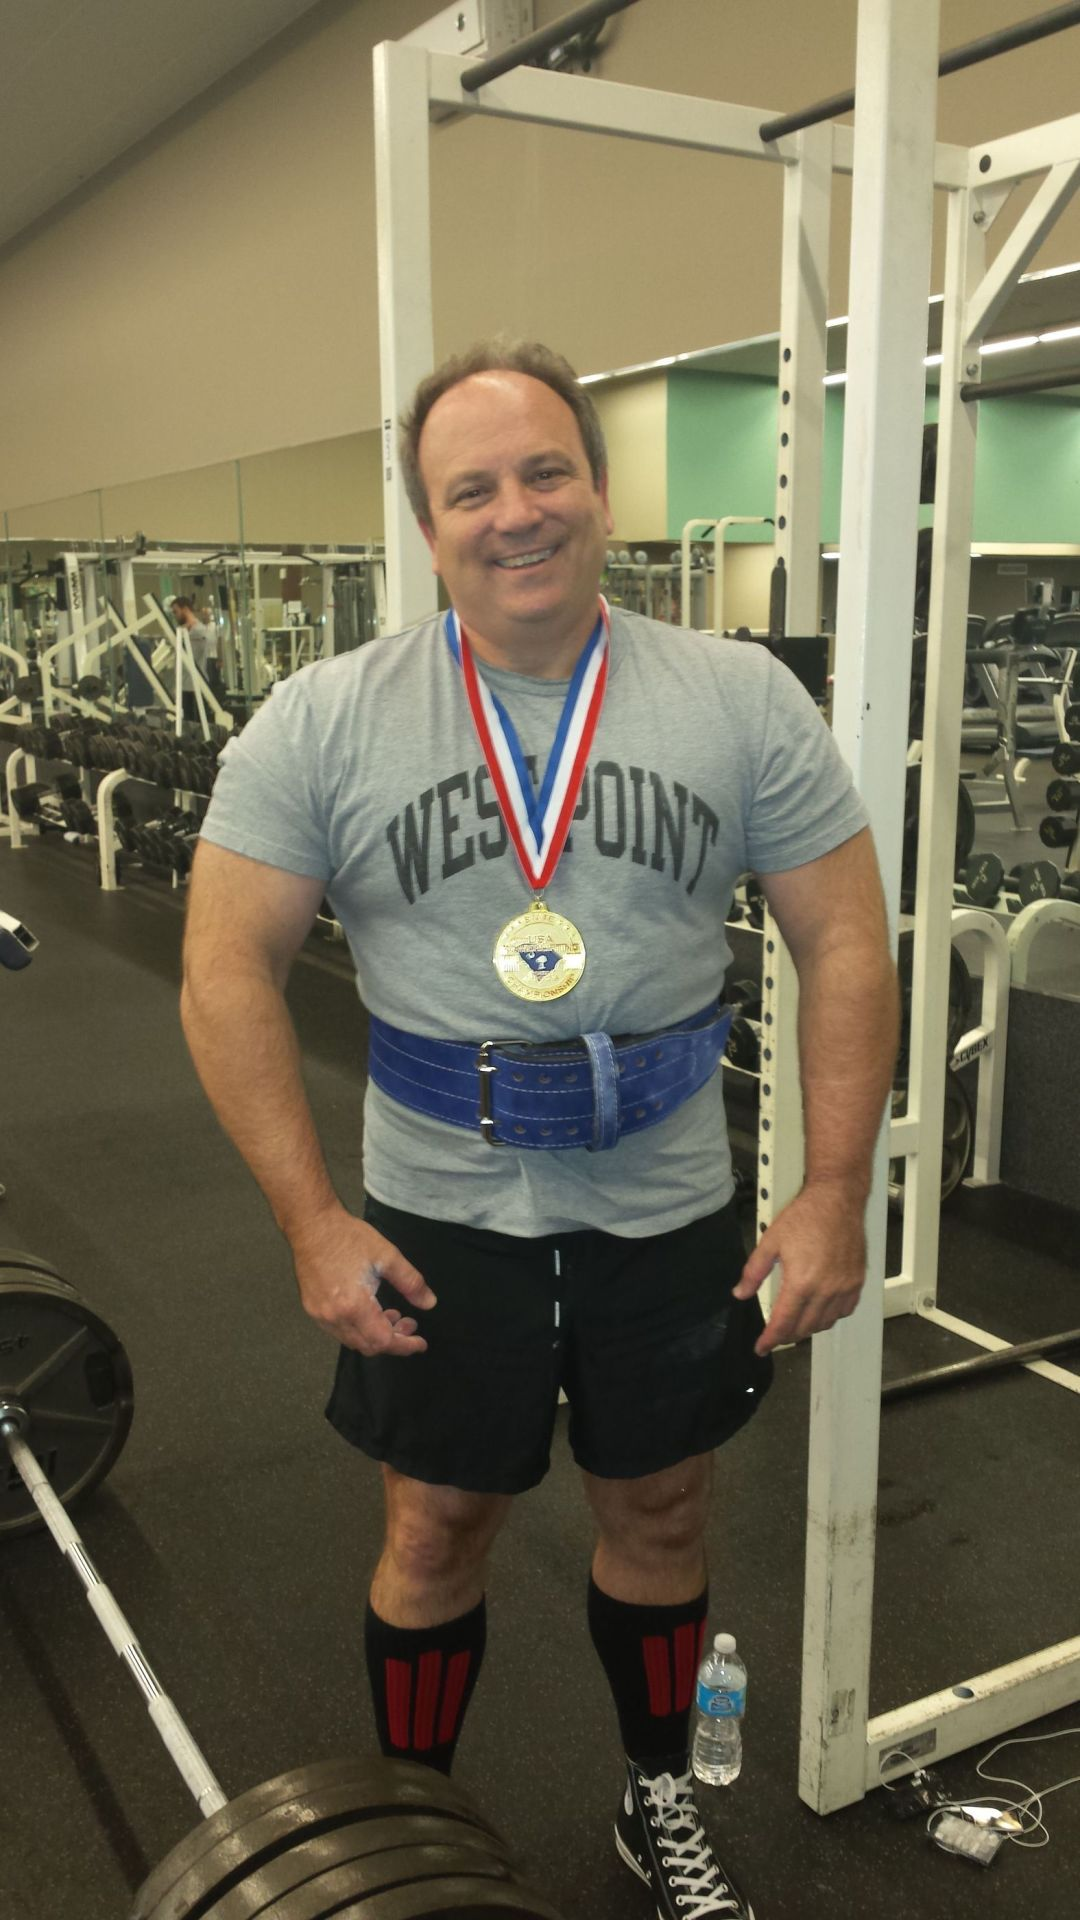 Real Estate News — Carolina One agent shows mettle in powerlifting competition; builder rolls out new home design in gated North Charleston village